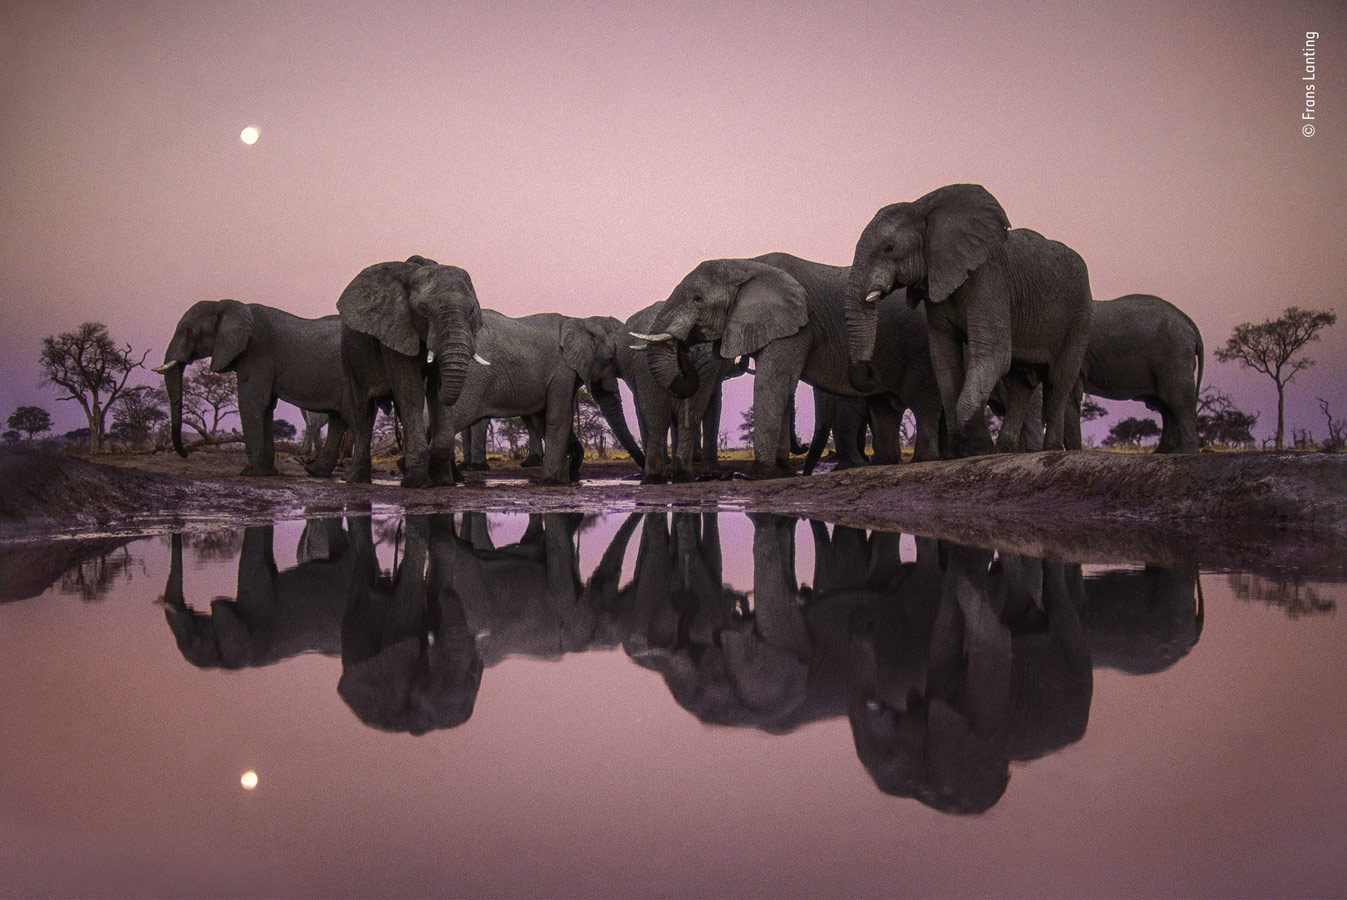 Wildlife Photographer of the Year Lifetime Achievement Award, Elephants at Twilight, © Frans Lanting, The Netherlands, Winner, Wildlife Photographer of the Year